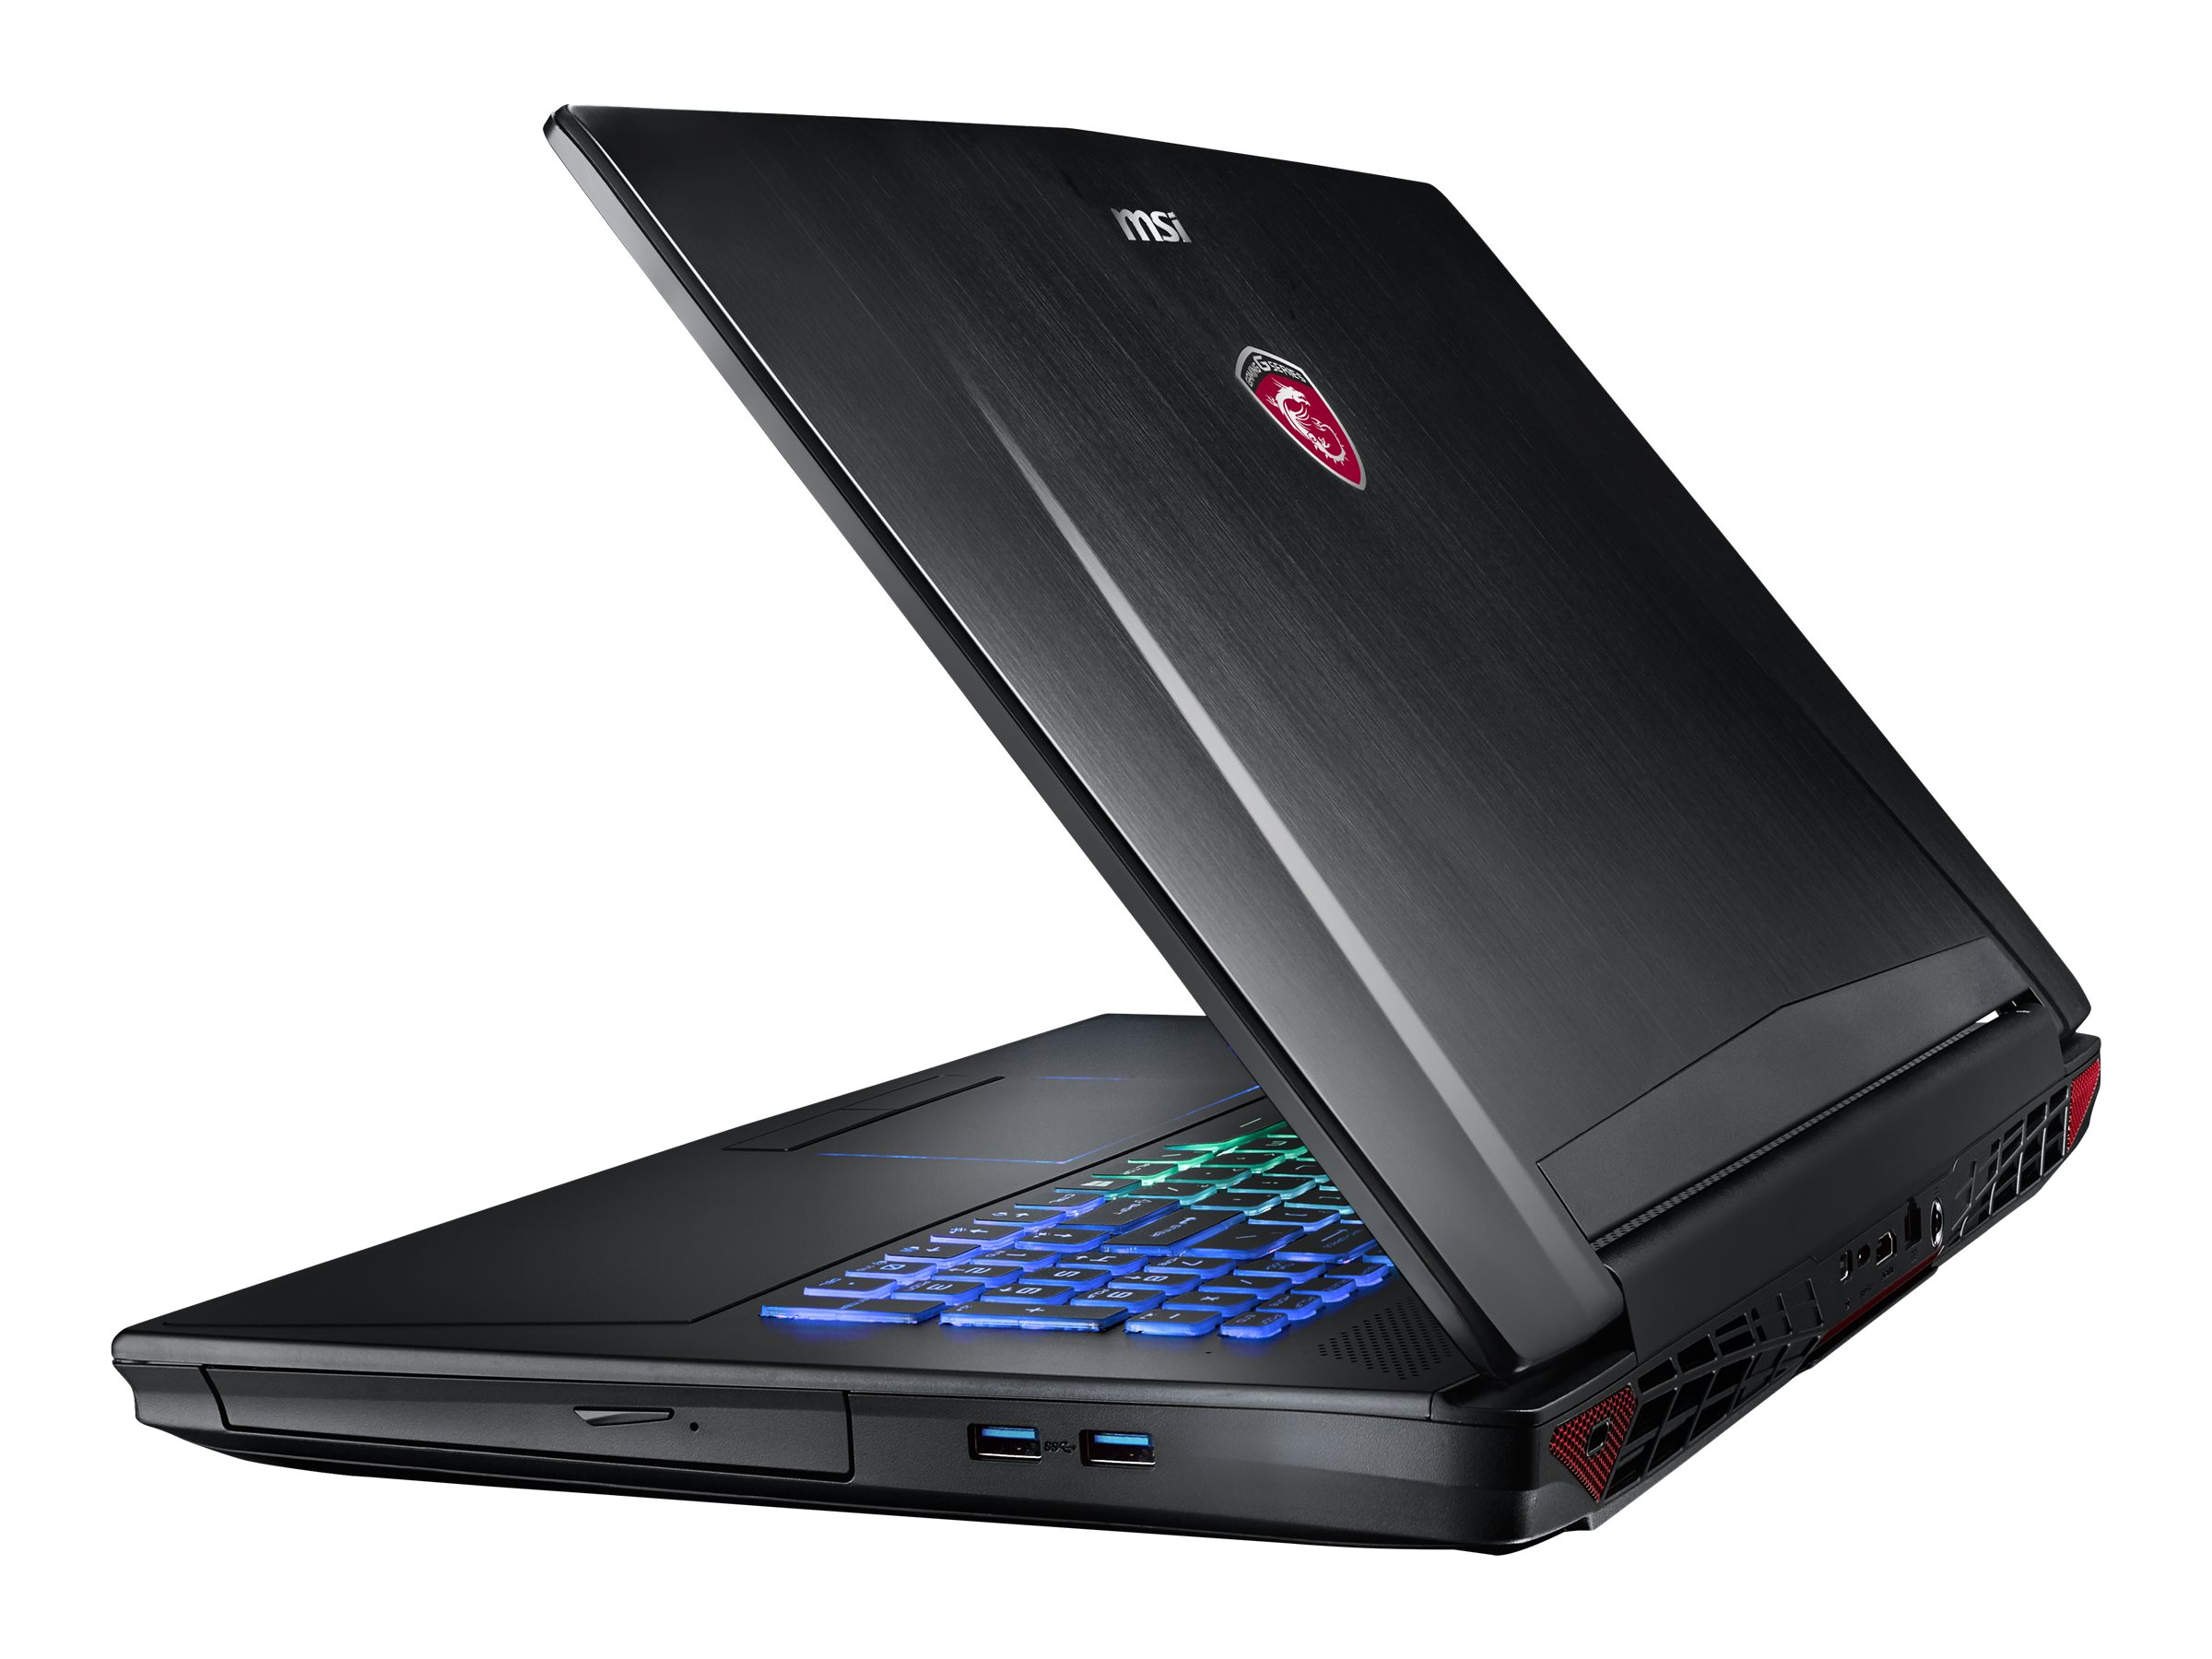 MSI Computer GT72VR257 Image 5